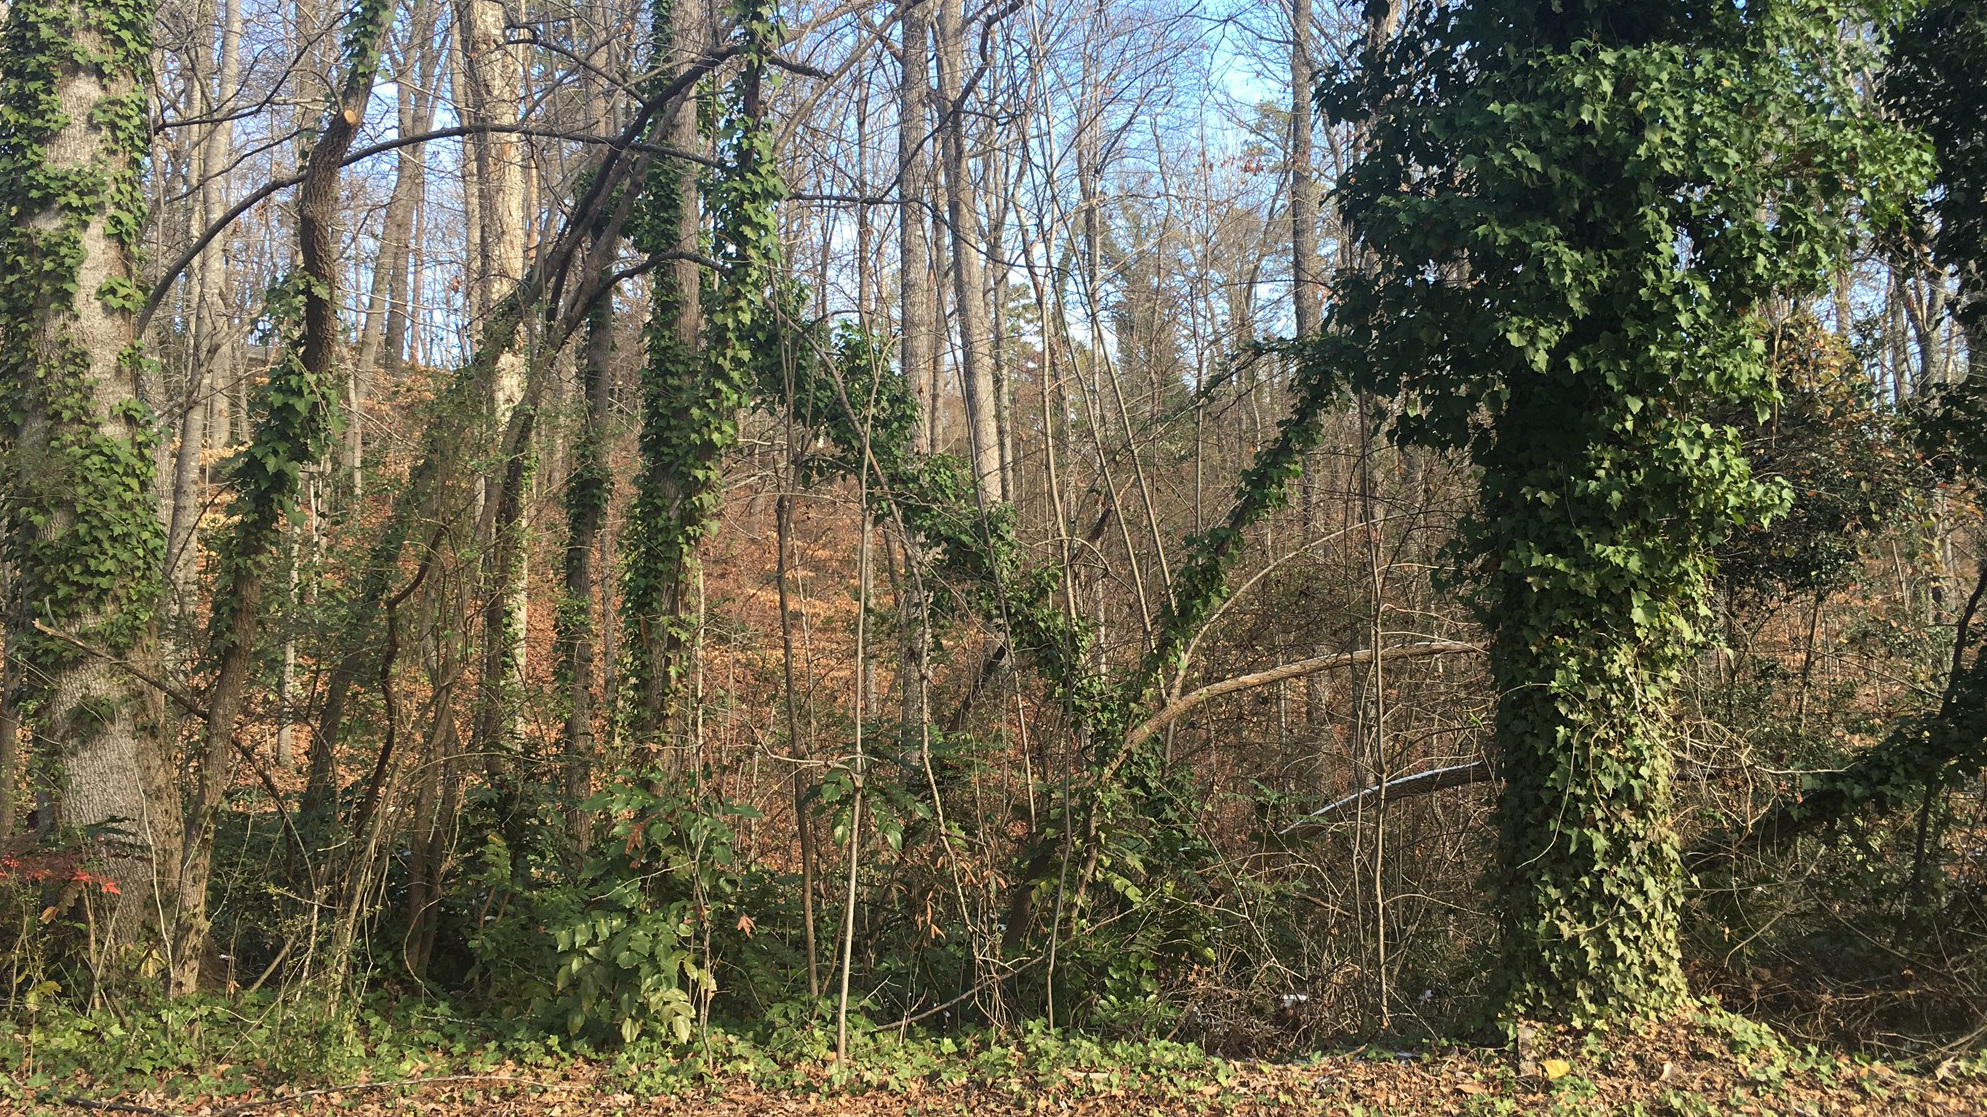 Exceptional residential lot in the Chattahoochee Estates neighborhood. Gentle rolling topography with some trees. Located across the street from beautiful Lake Lanier homes, just down the street from the Chattahoochee Golf Course and the Chattahoochee Country Club. Bring your own builder or we can recommed one. No restrictions or covenants.